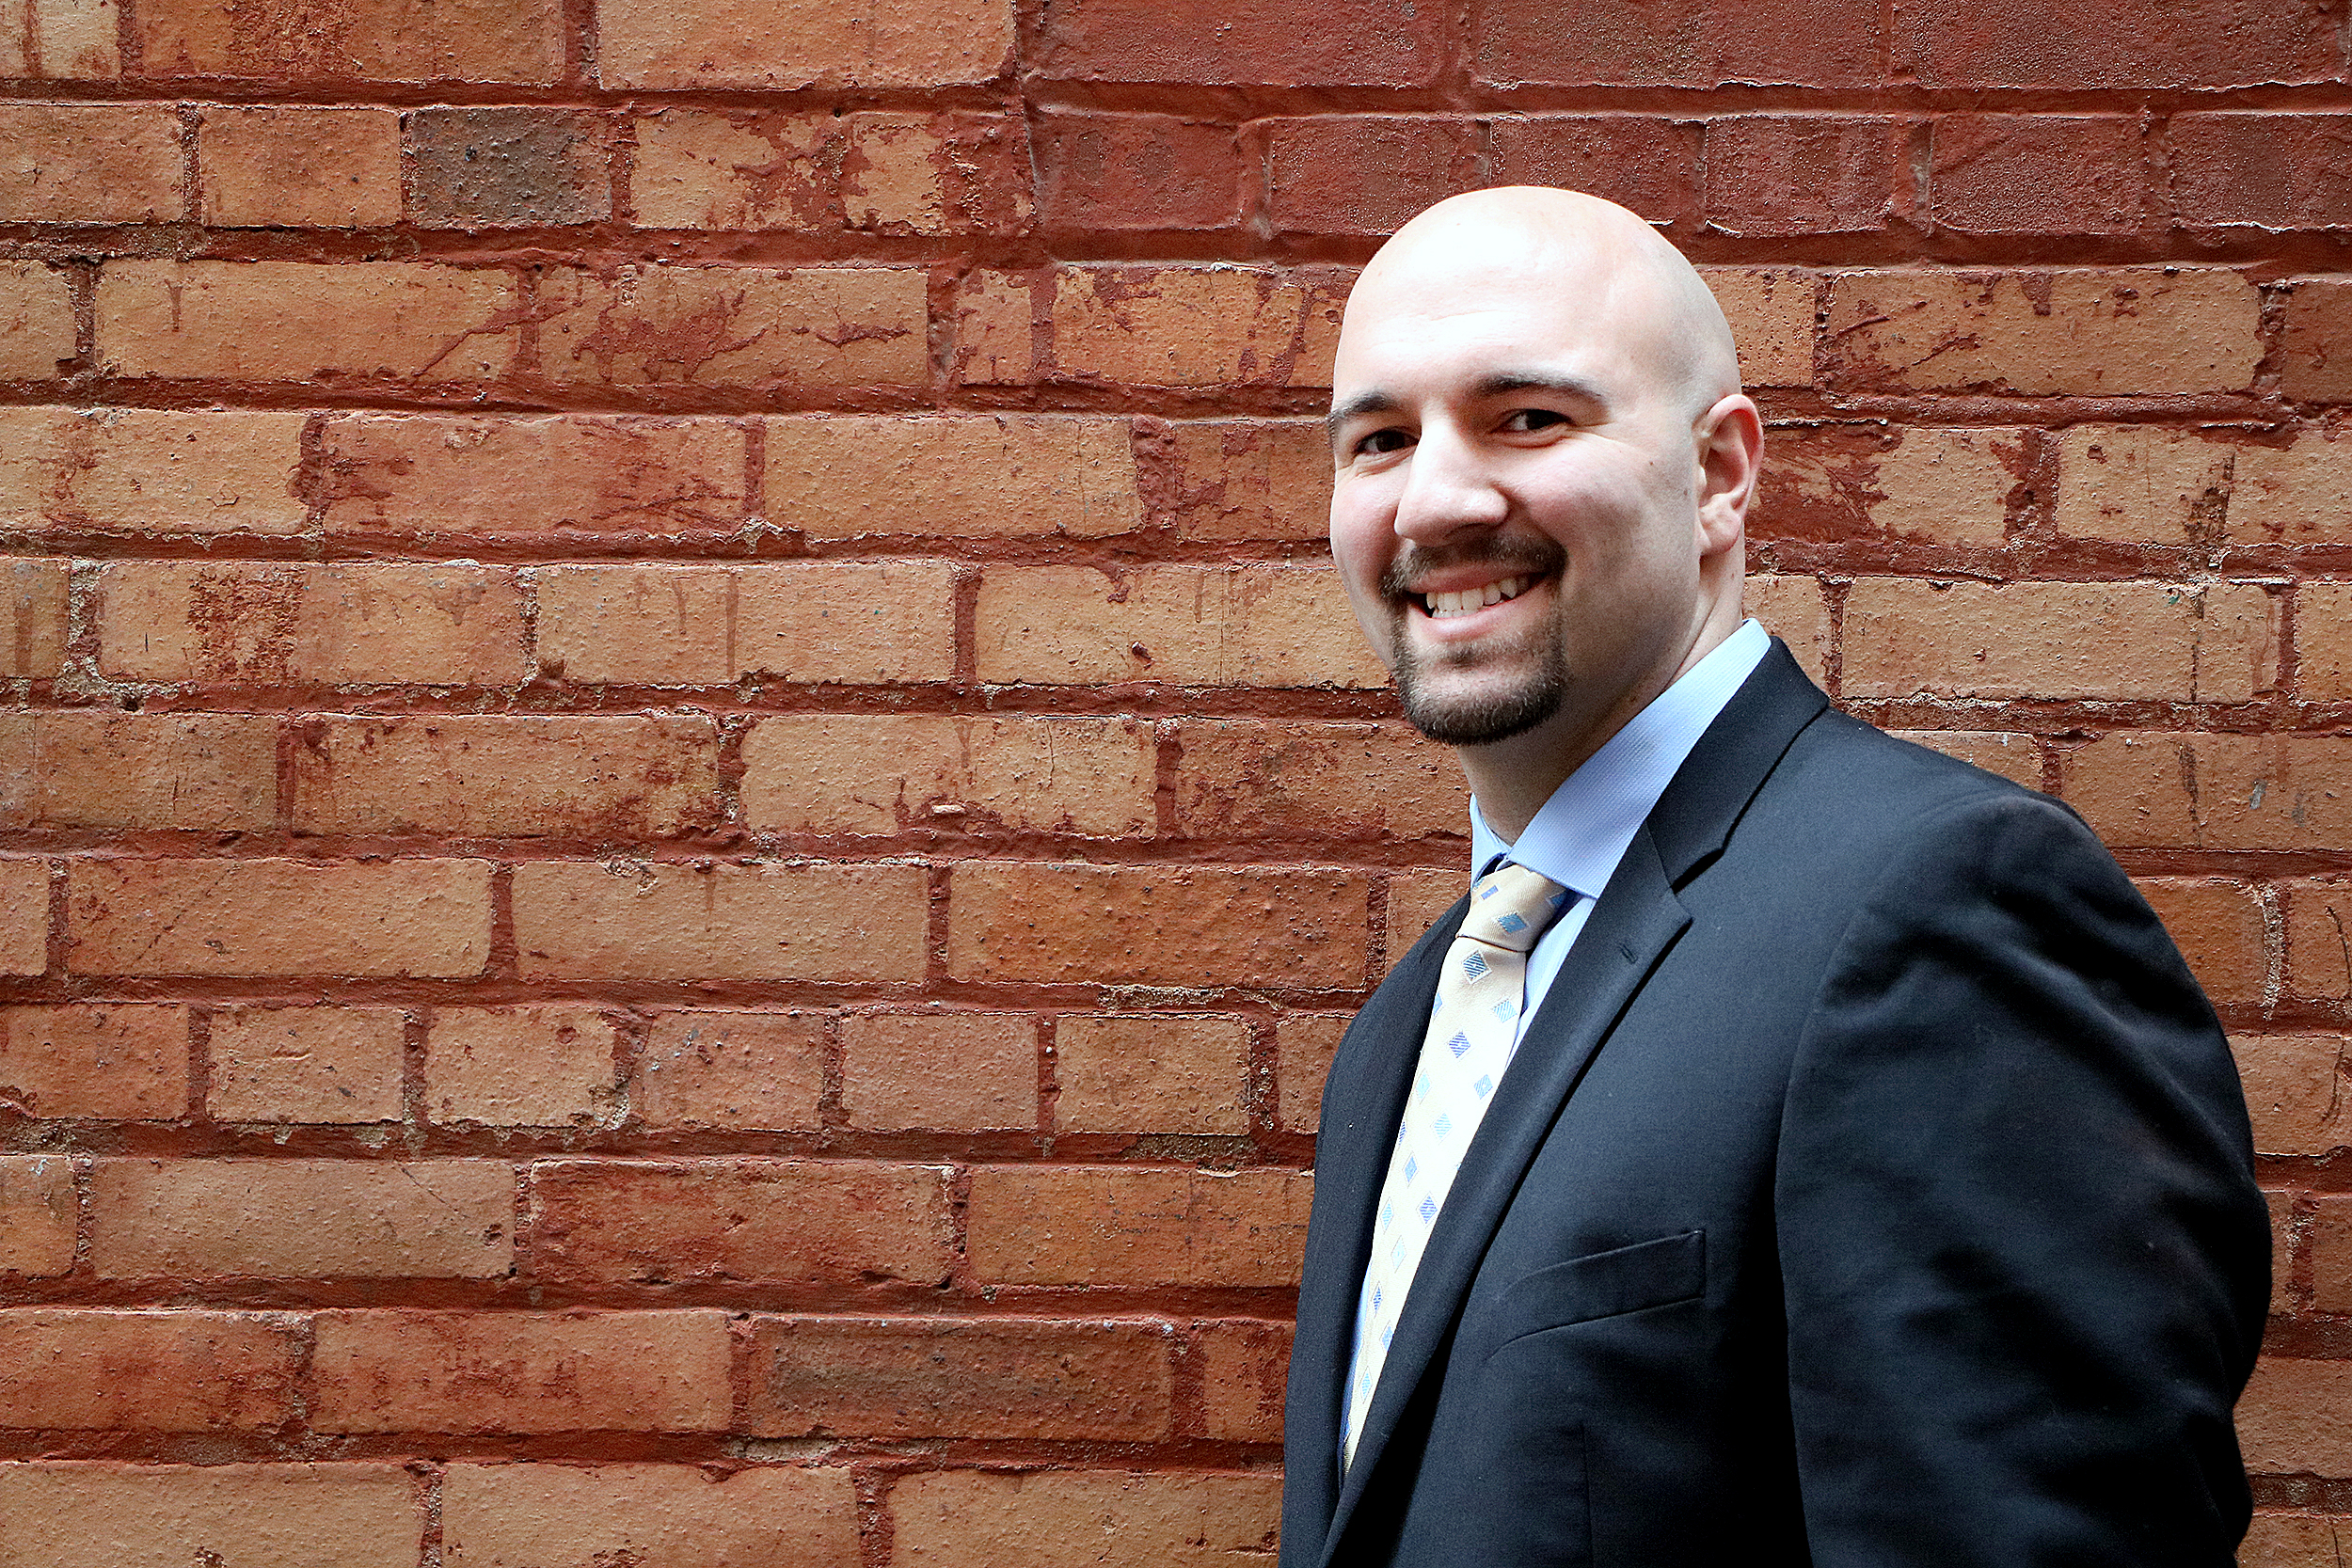 Photo of Anthony Ianni wearing a suit and tie outside of a building at Henry Ford College